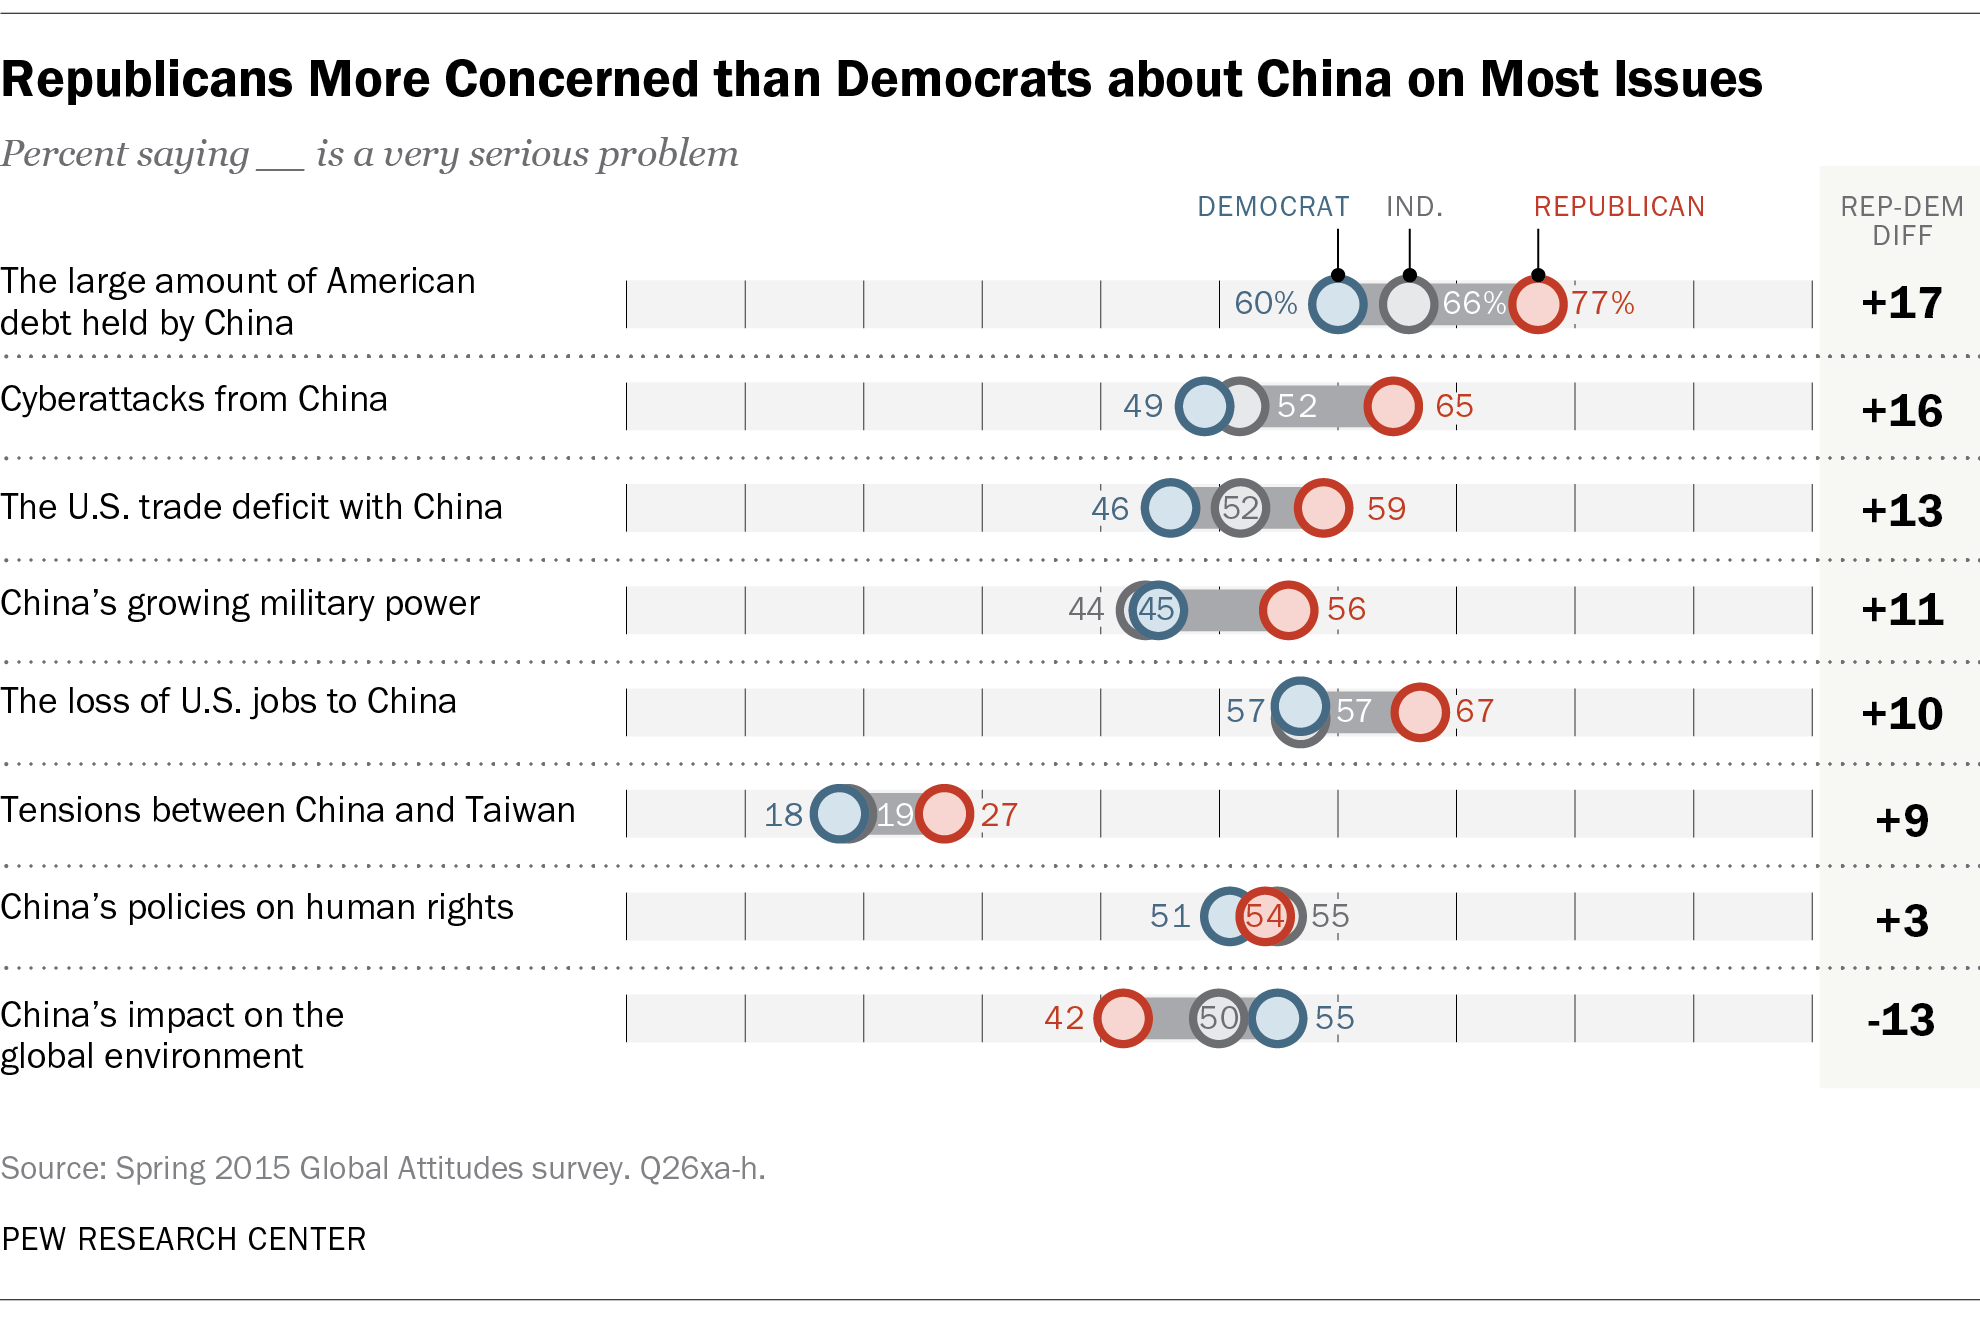 Republicans More Concerned than Democrats about China on Most Issues